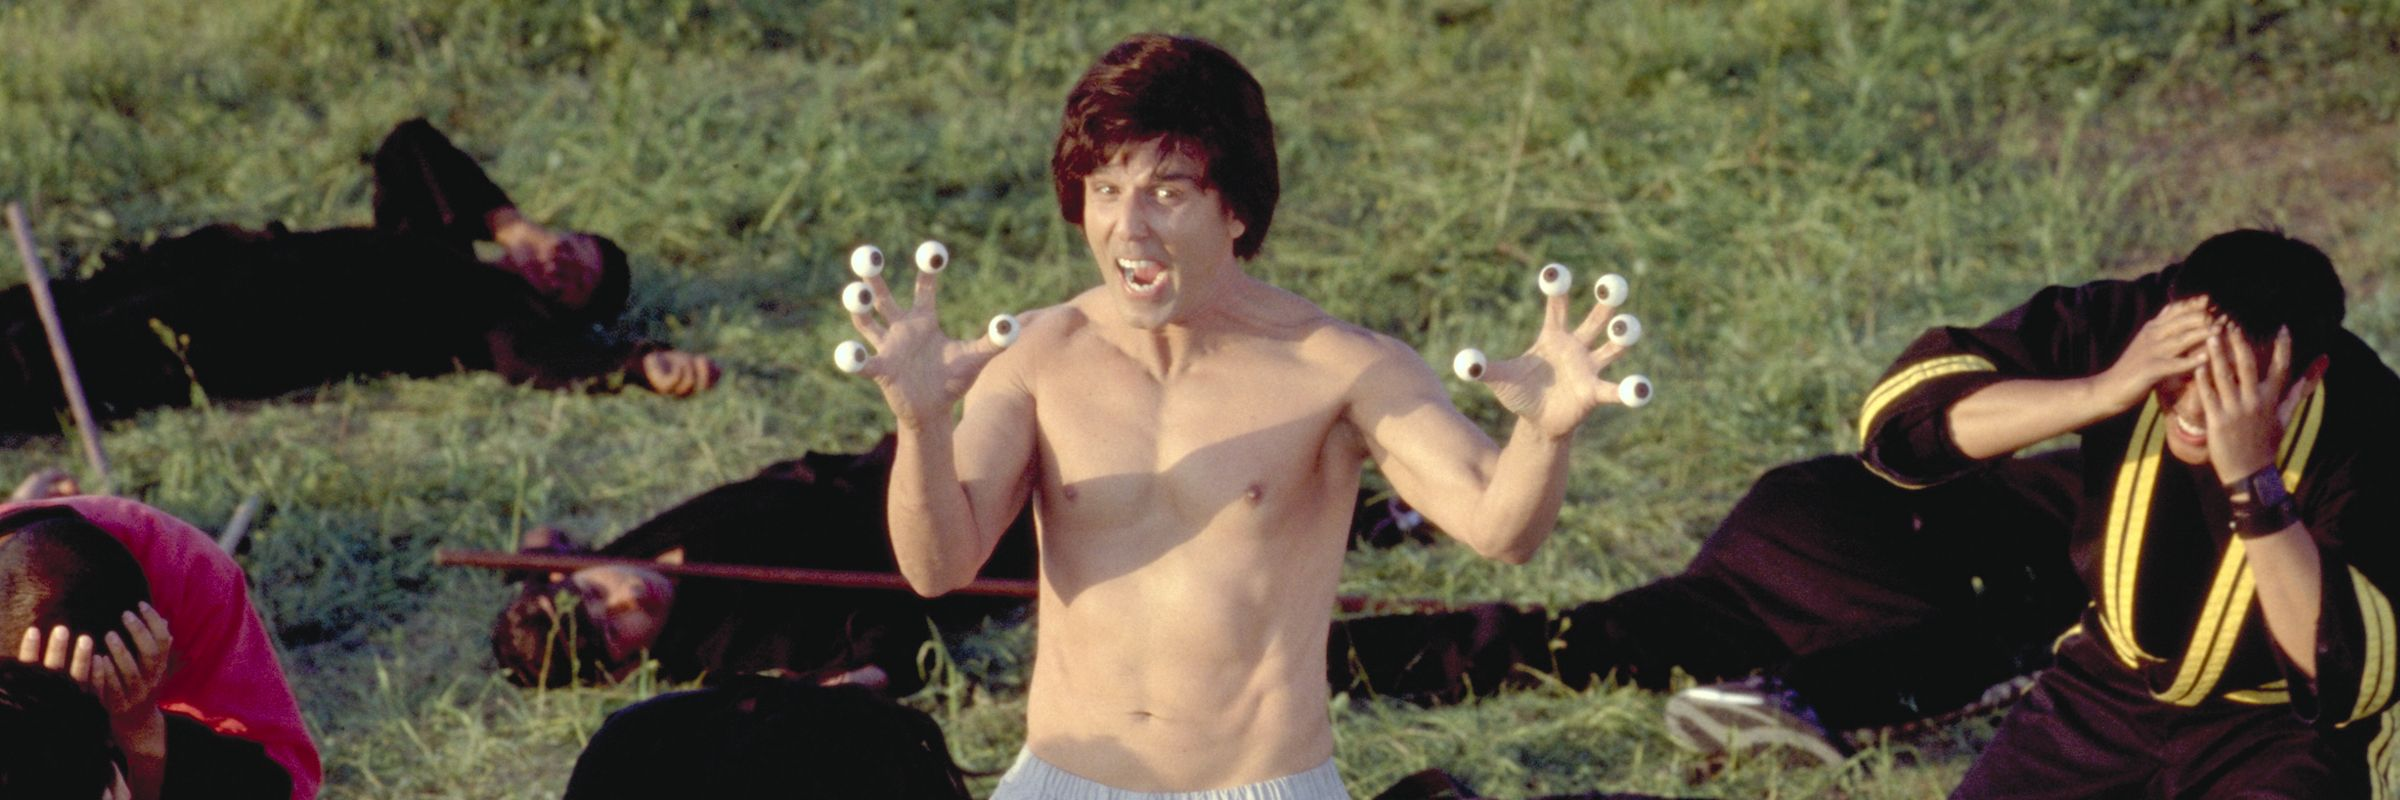 kung pow full movie in english free download